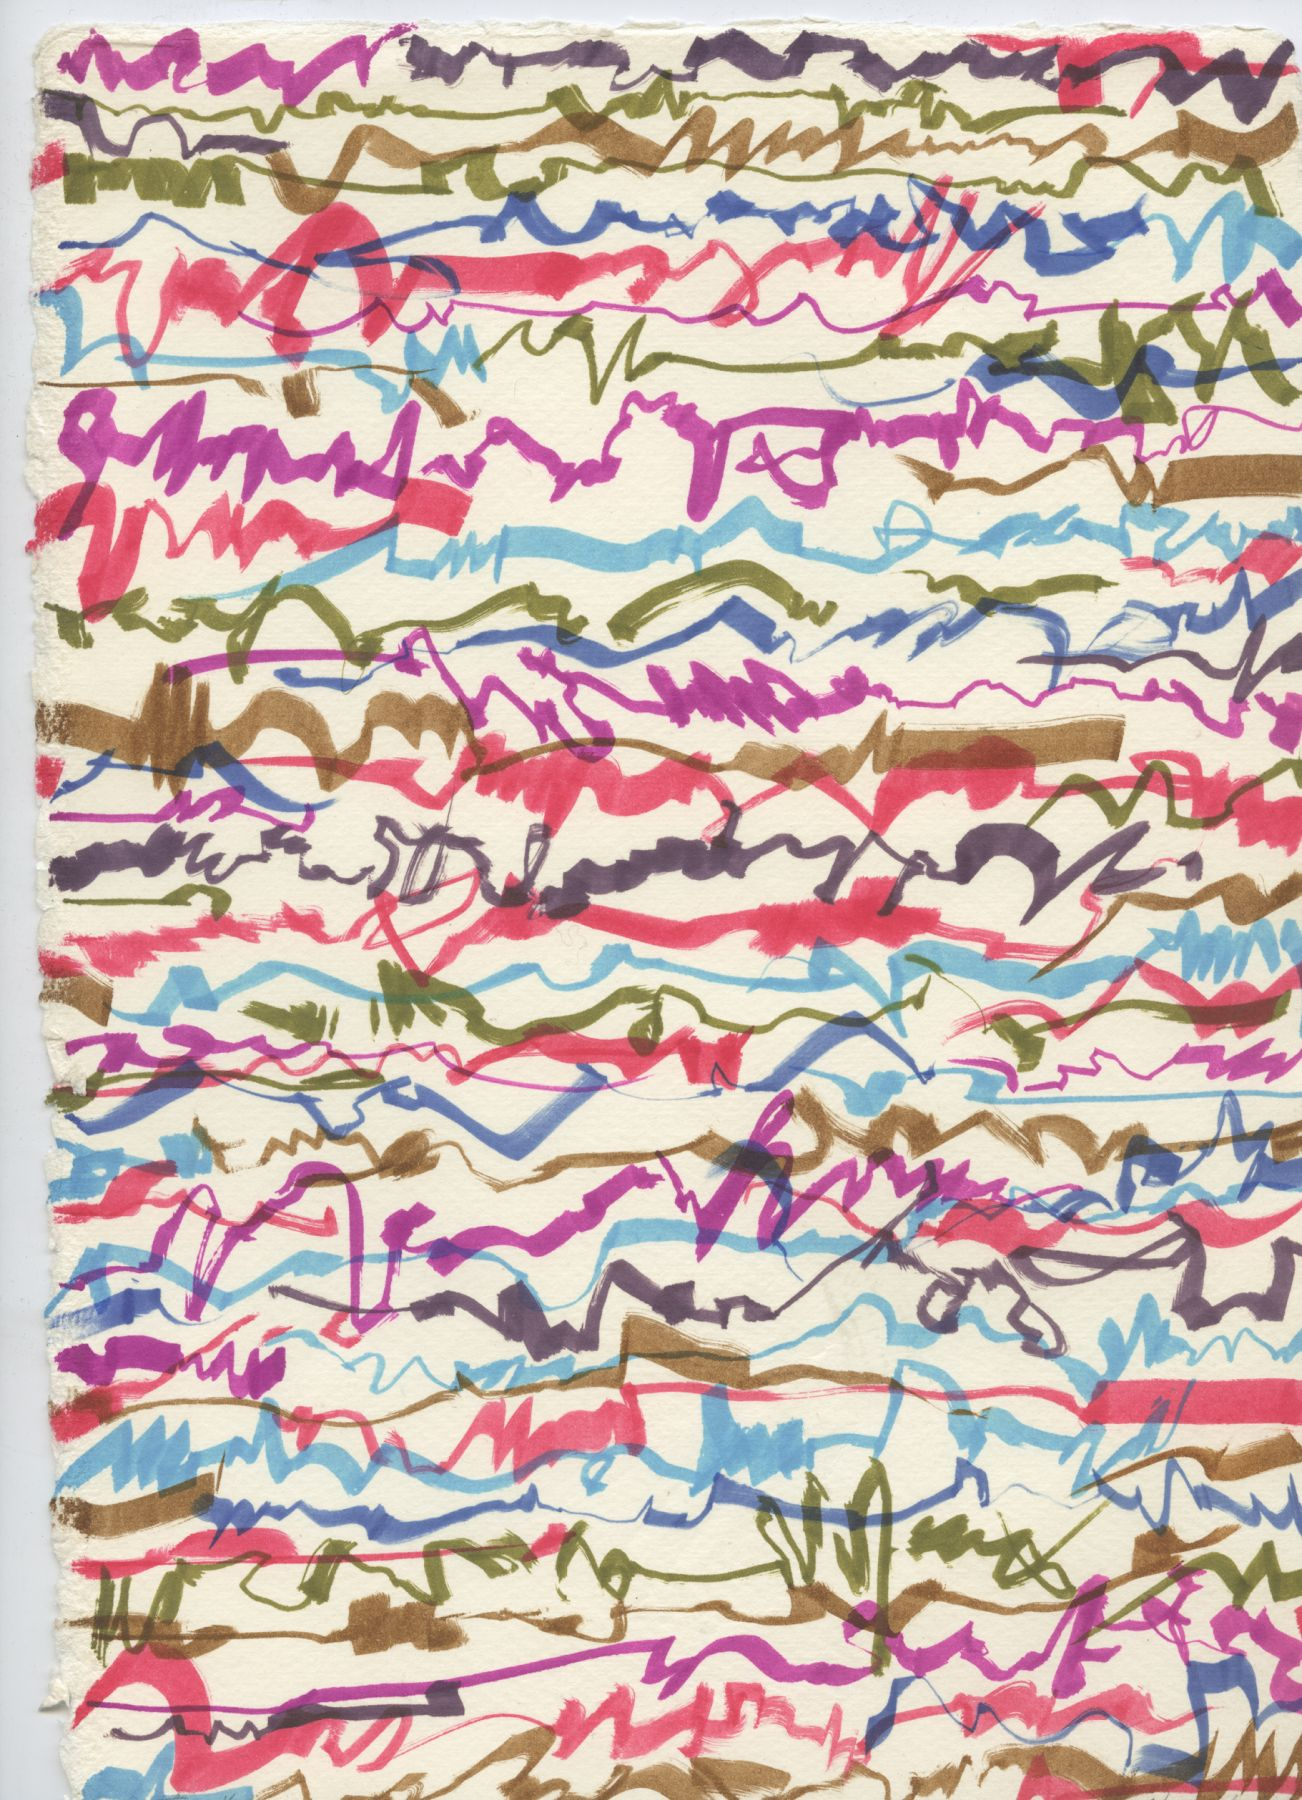 Letter, 1982, colored feltpen on paper, 11 3/4 x 8 3/8 inches